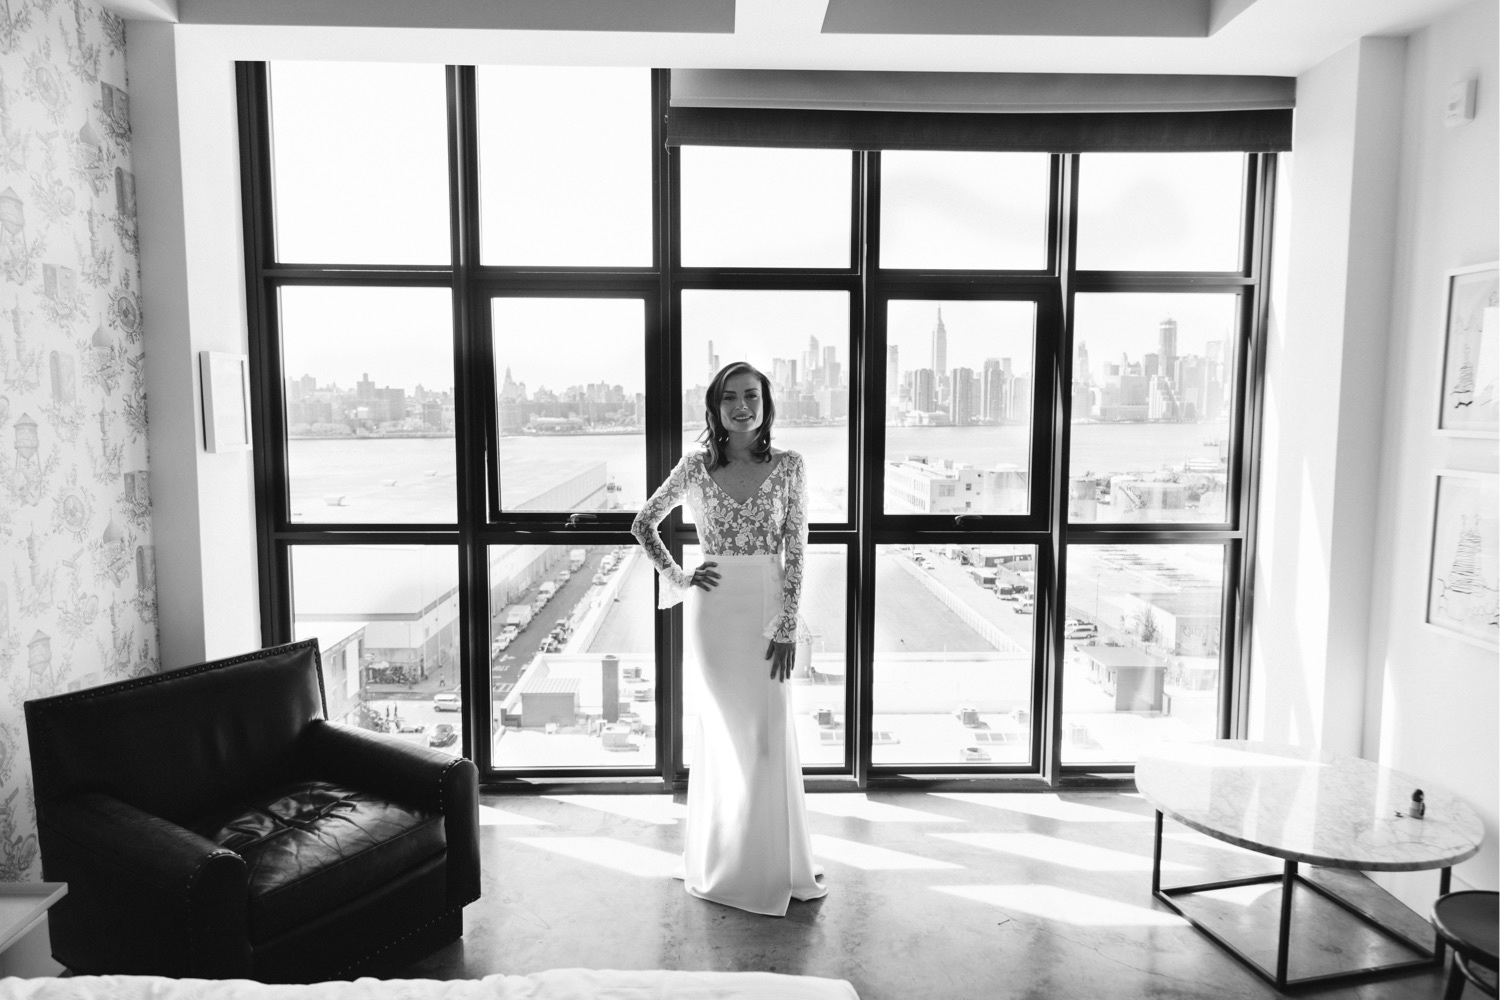 beautiful posed photo of the bride centered in the wythe hotel room windows with the manhattan city skyline visible in the distance